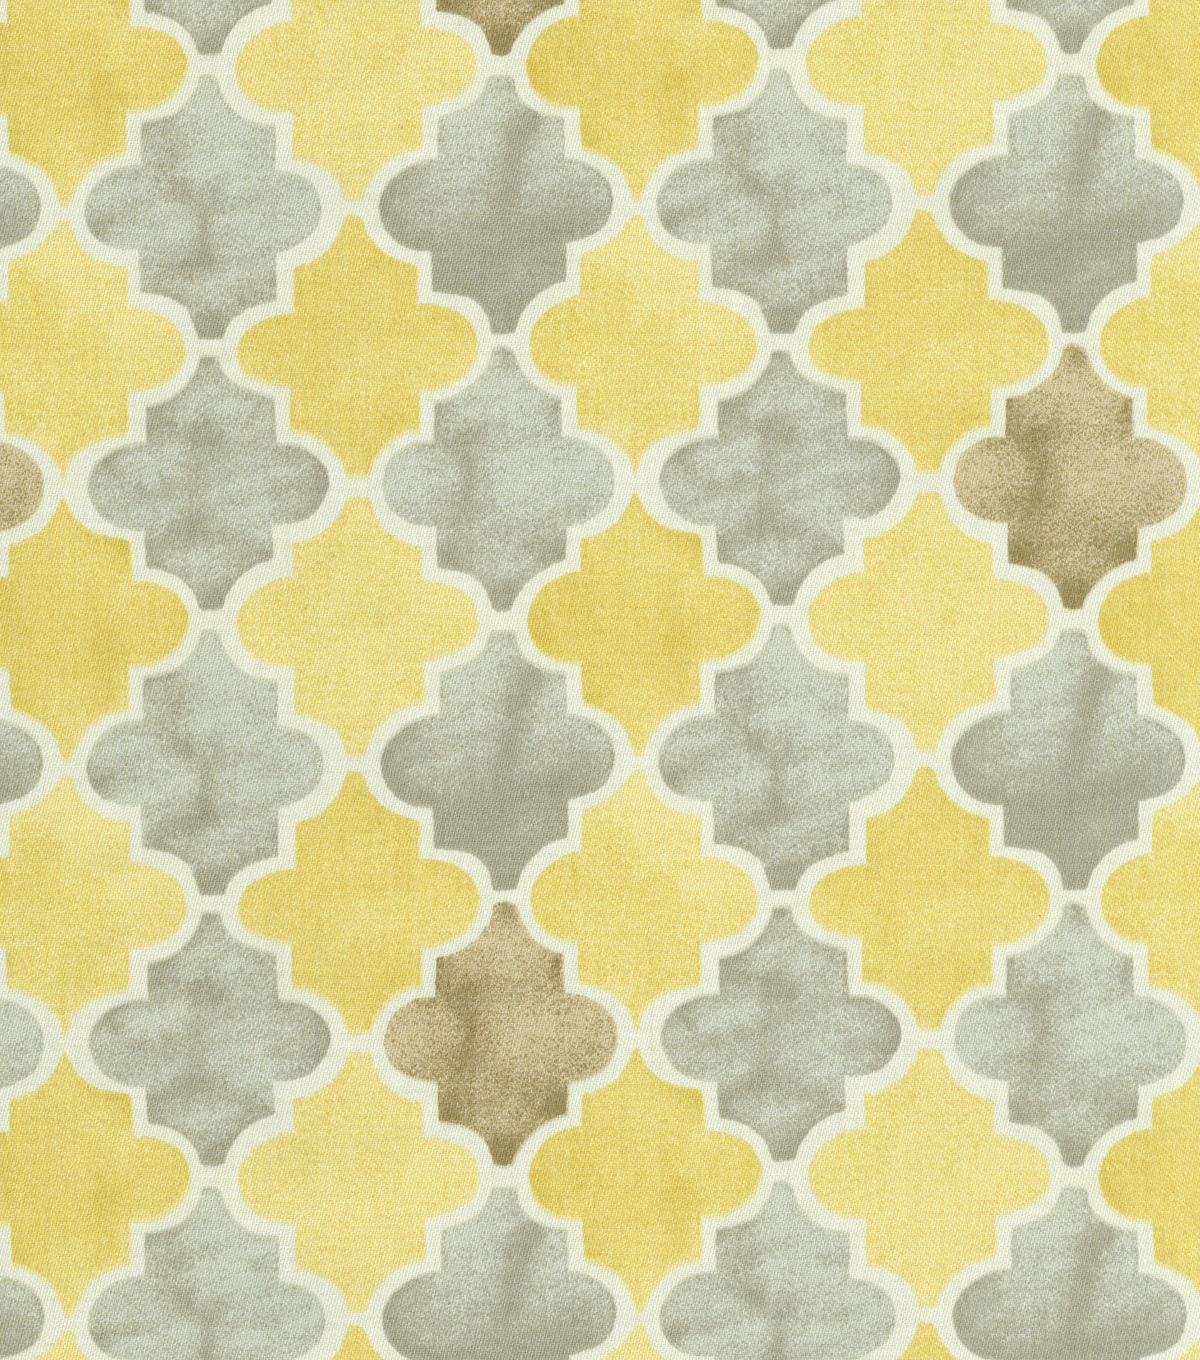 P/K Lifestyles Print Fabric-Beach Walk/Pebble